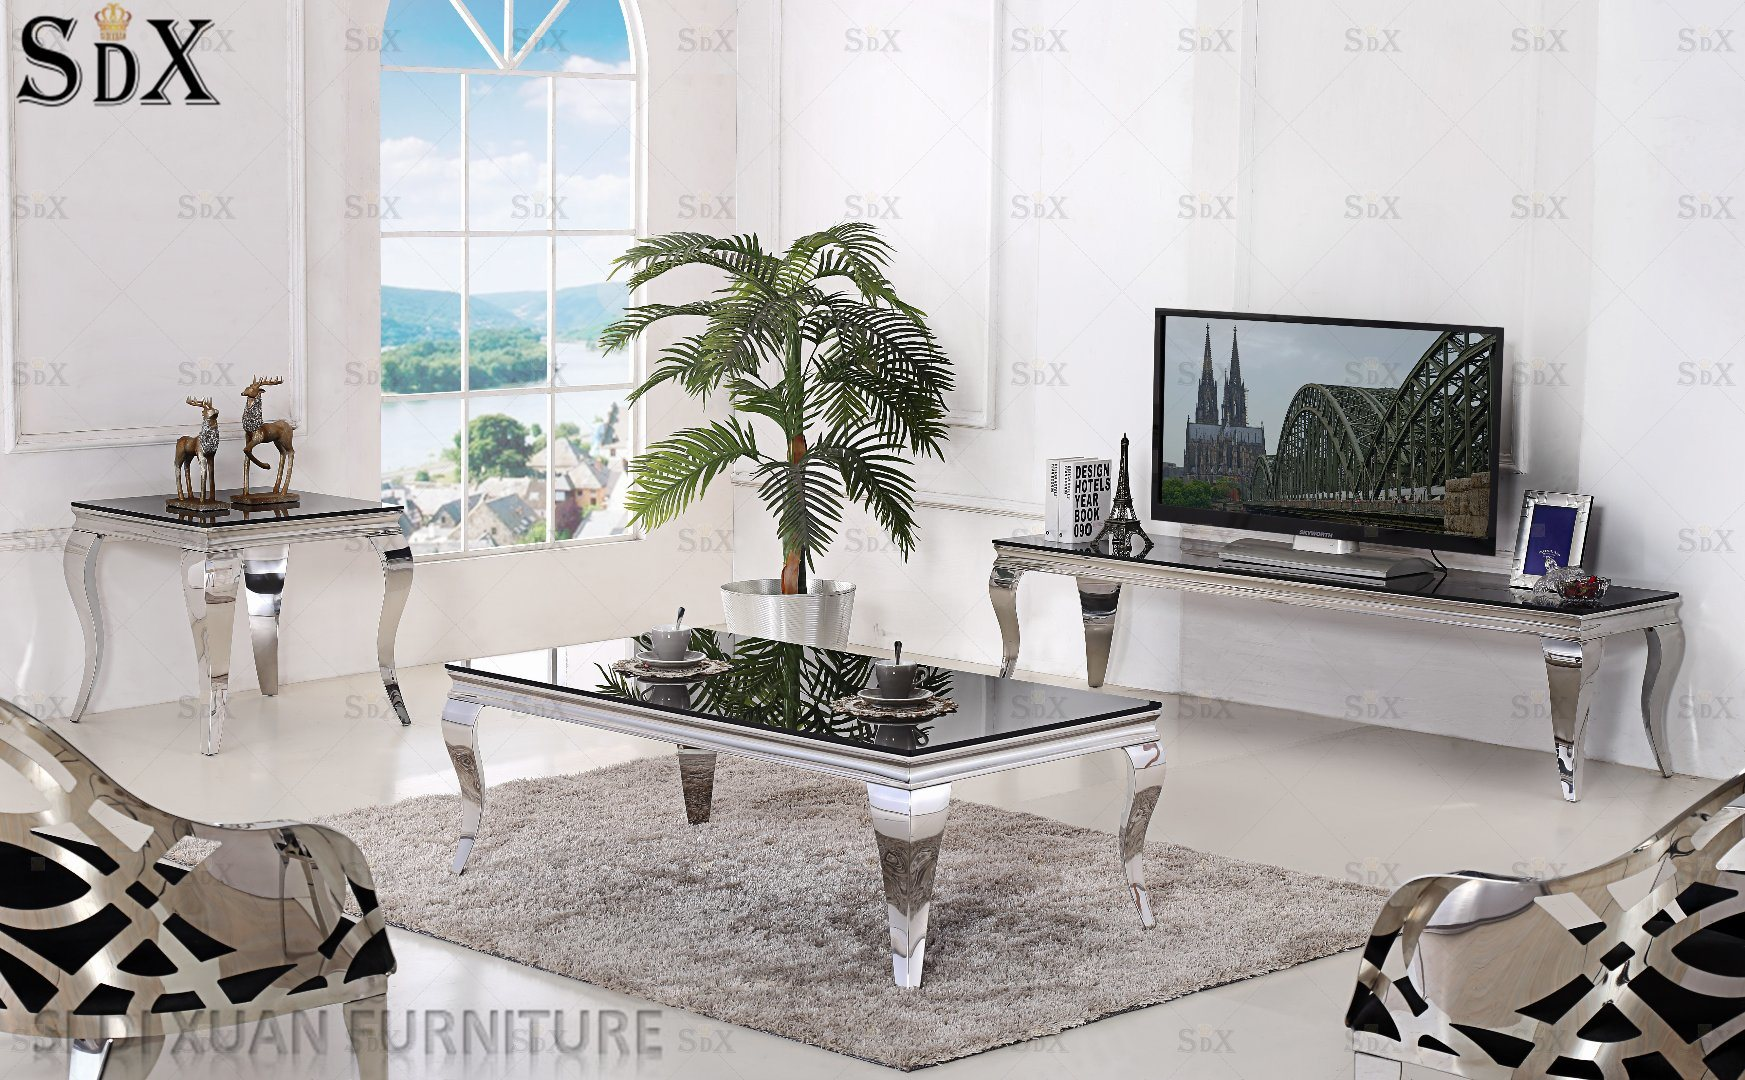 [Hot Item] Simple Glass Top Coffee Tables Stainless Steel Coffee Tables  Living Room Tables for Sale